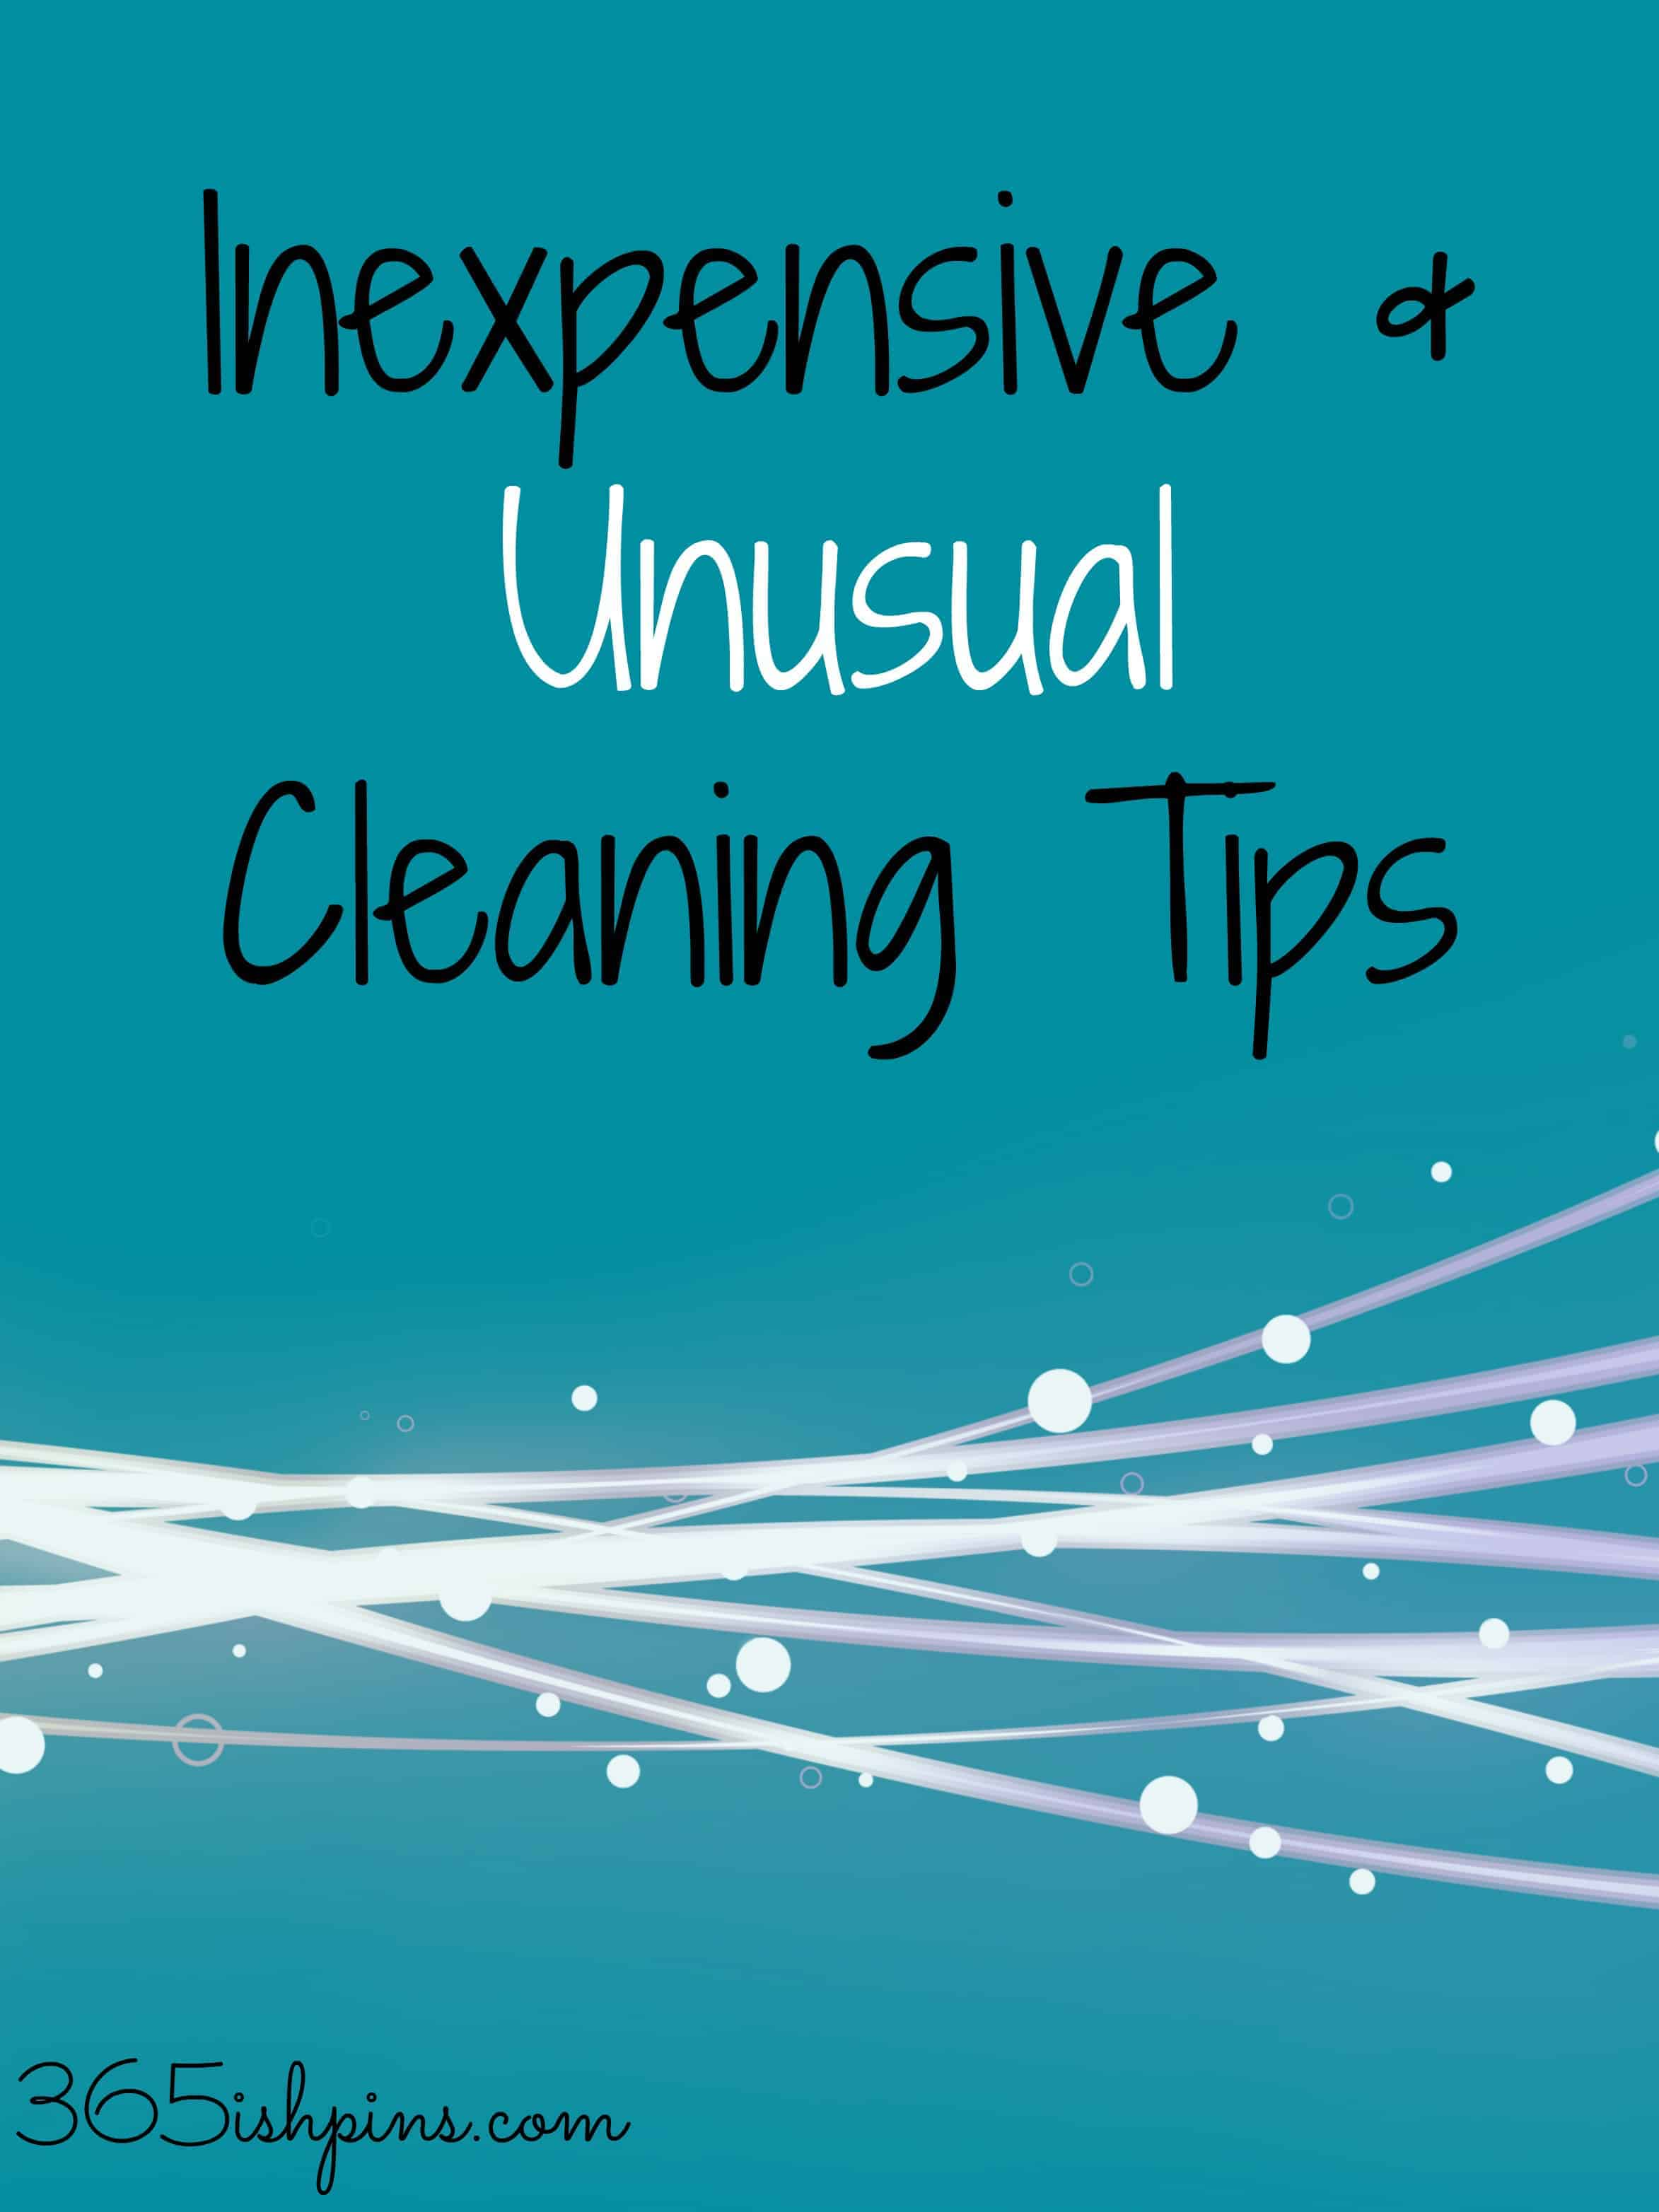 Day 357: Inexpensive and Unusual Cleaning Tips